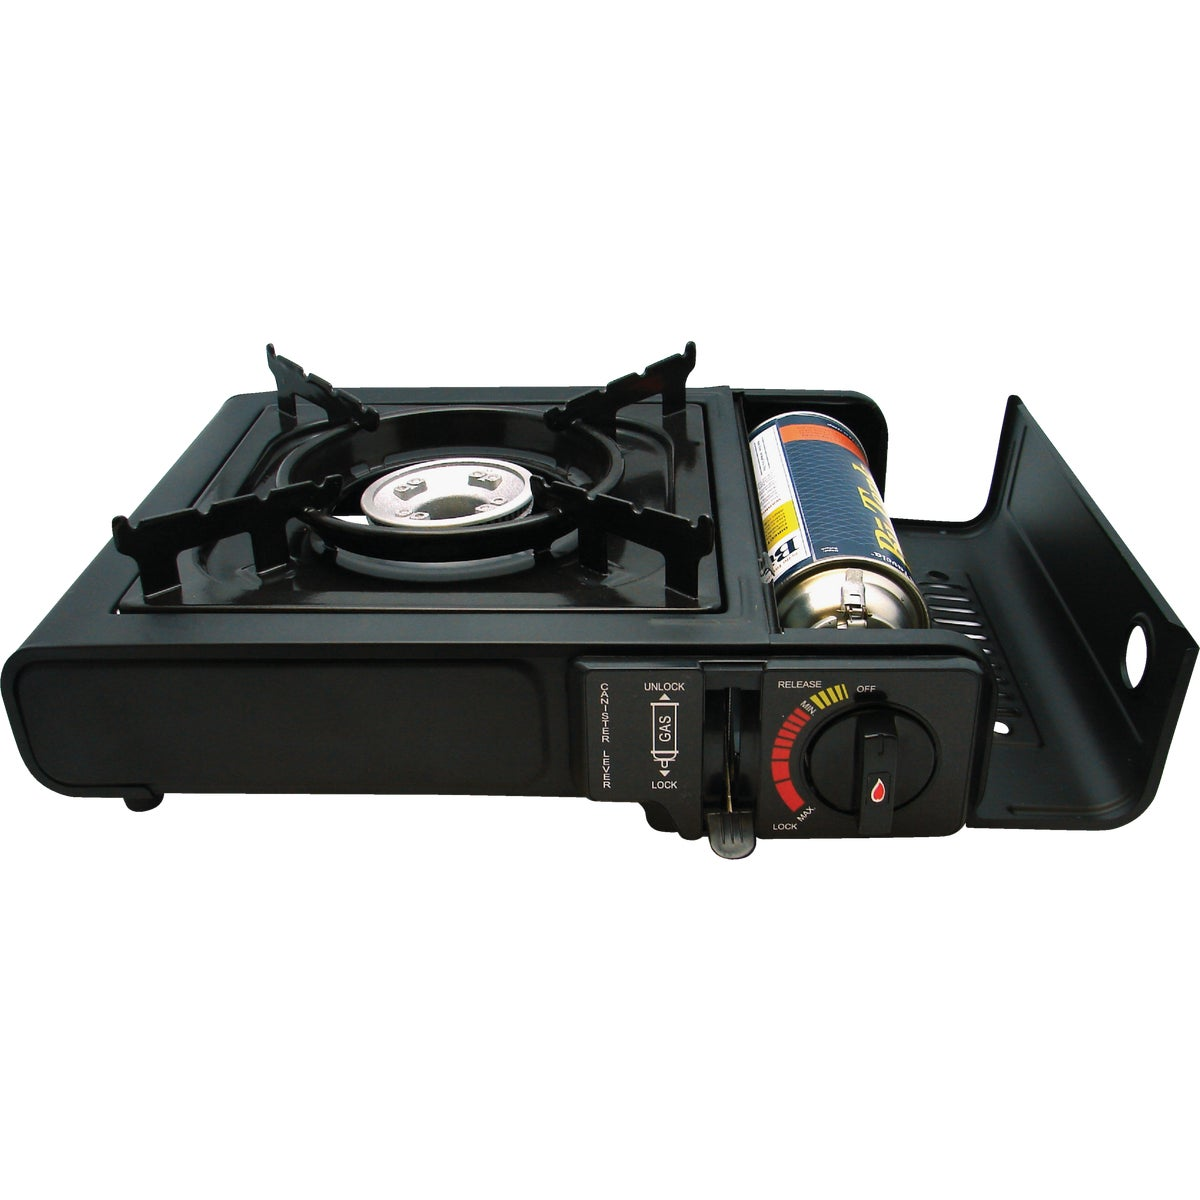 CLICK 2 COOK STOVE